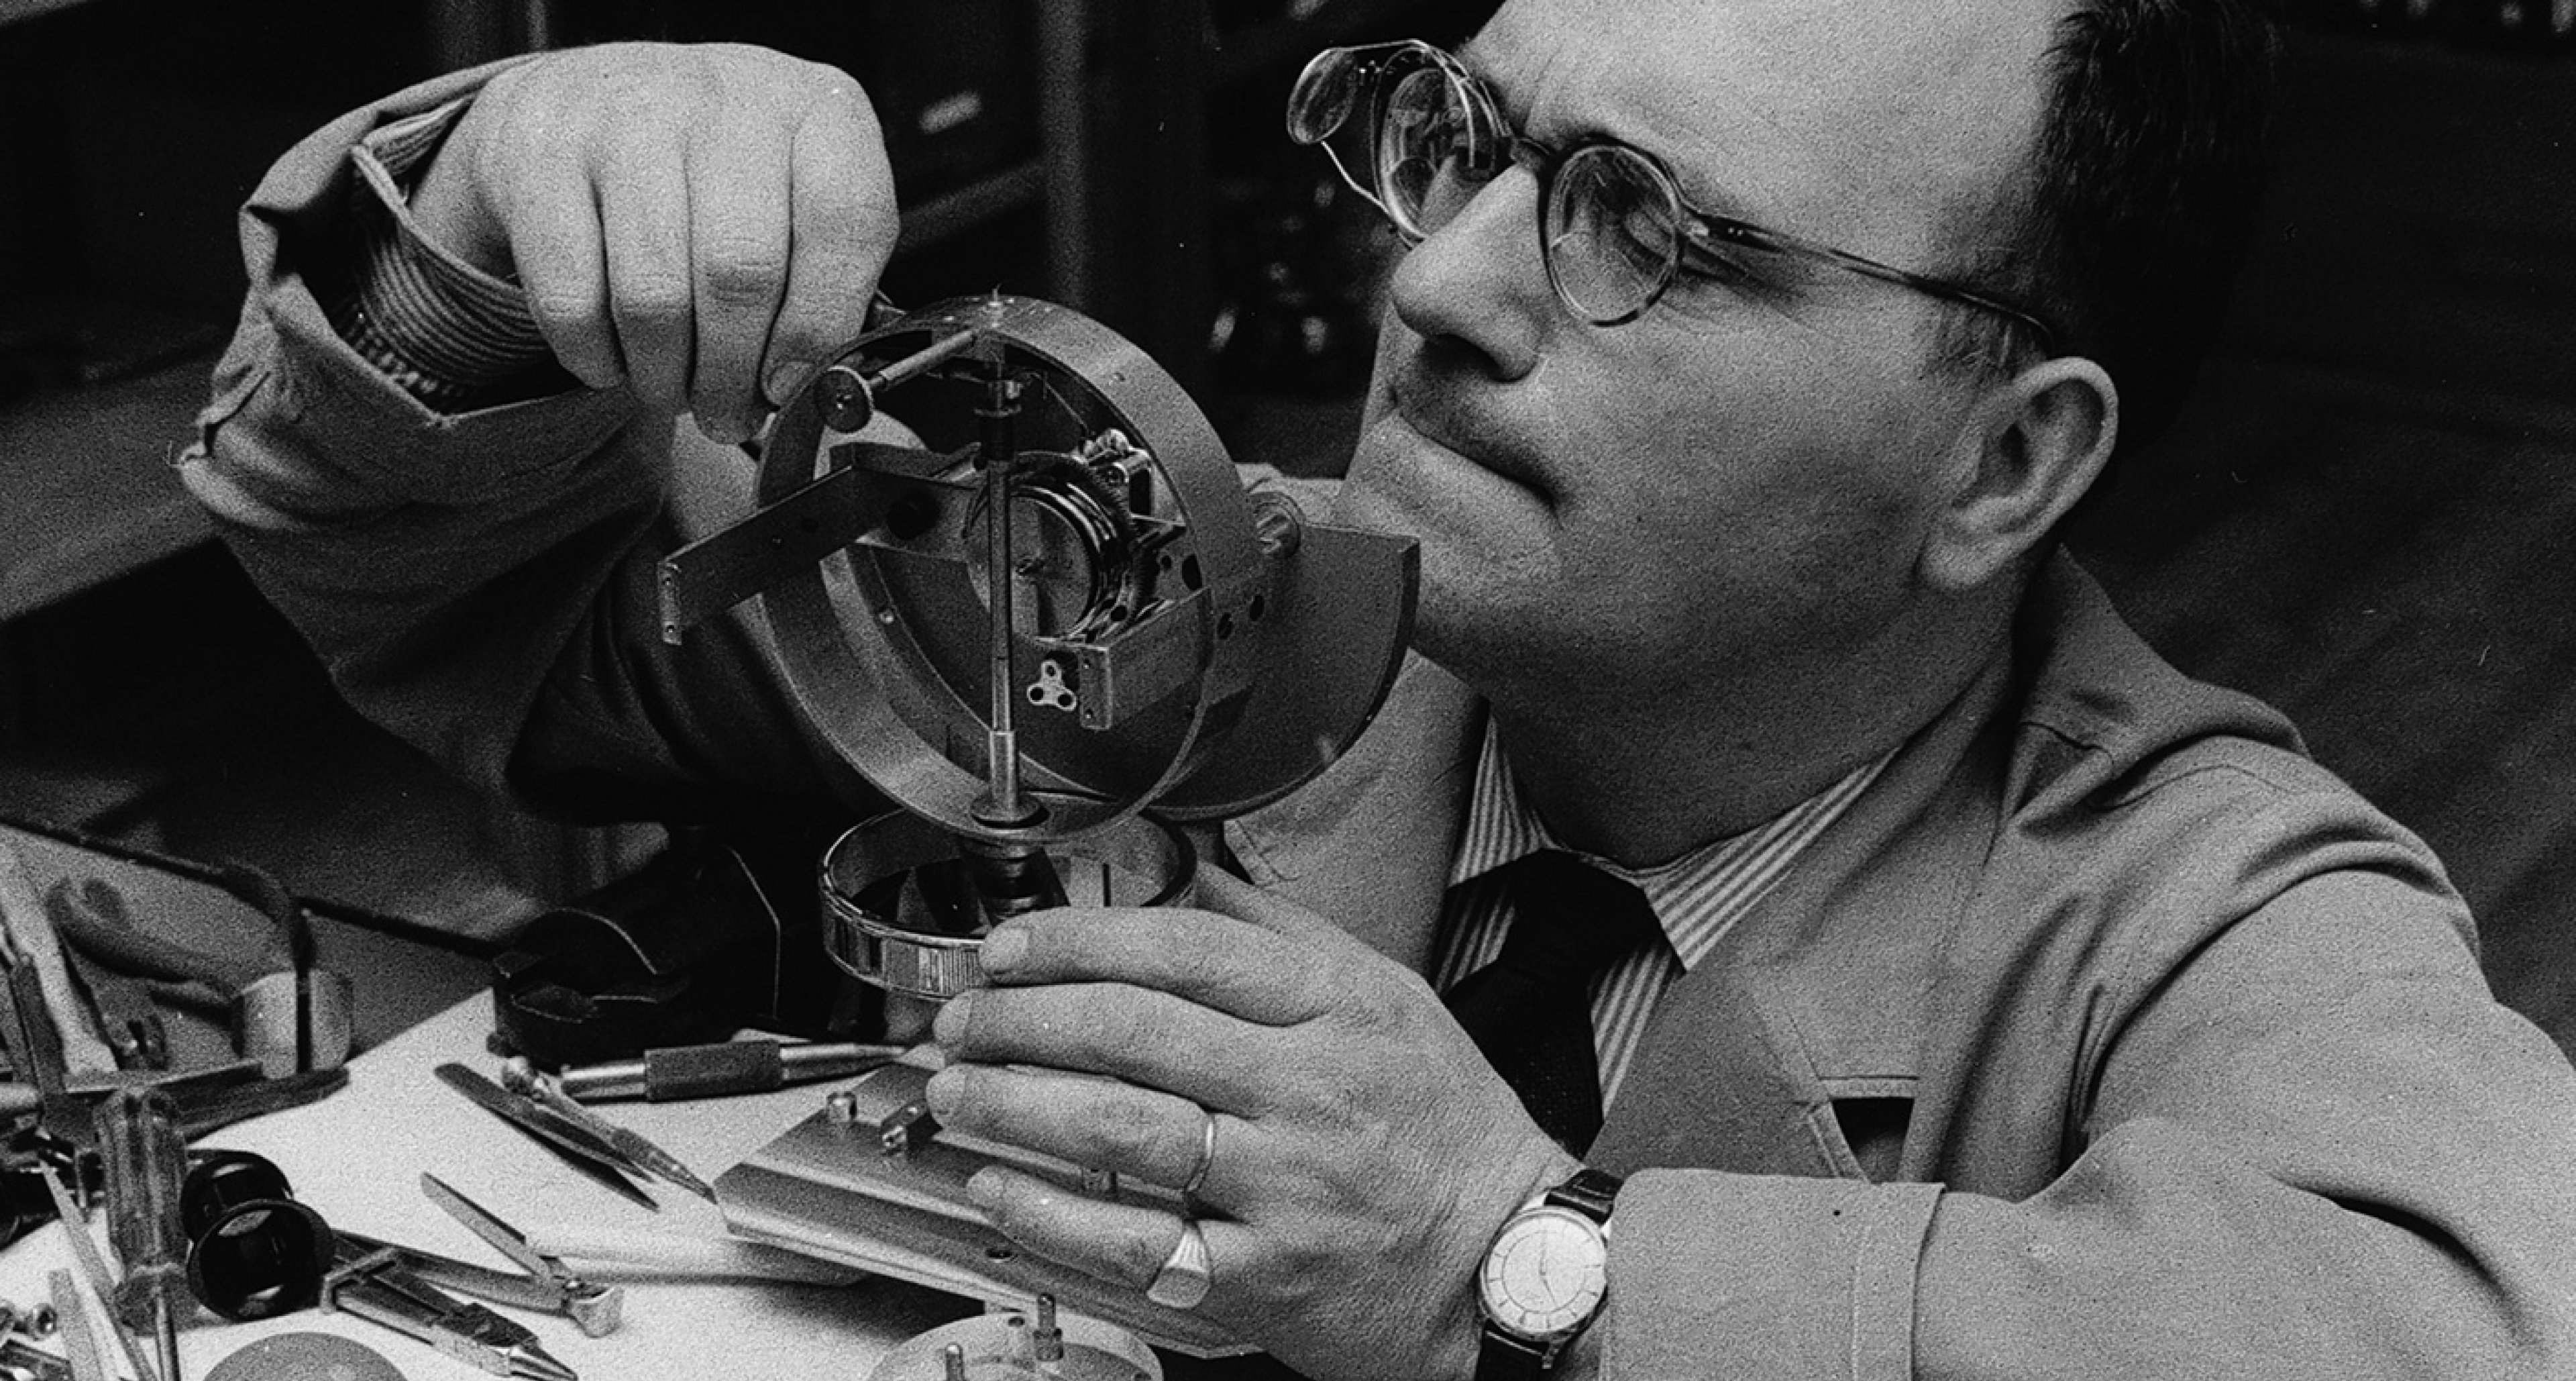 Precision engineering by hand at Jaeger LeCoultre HQ, 1950